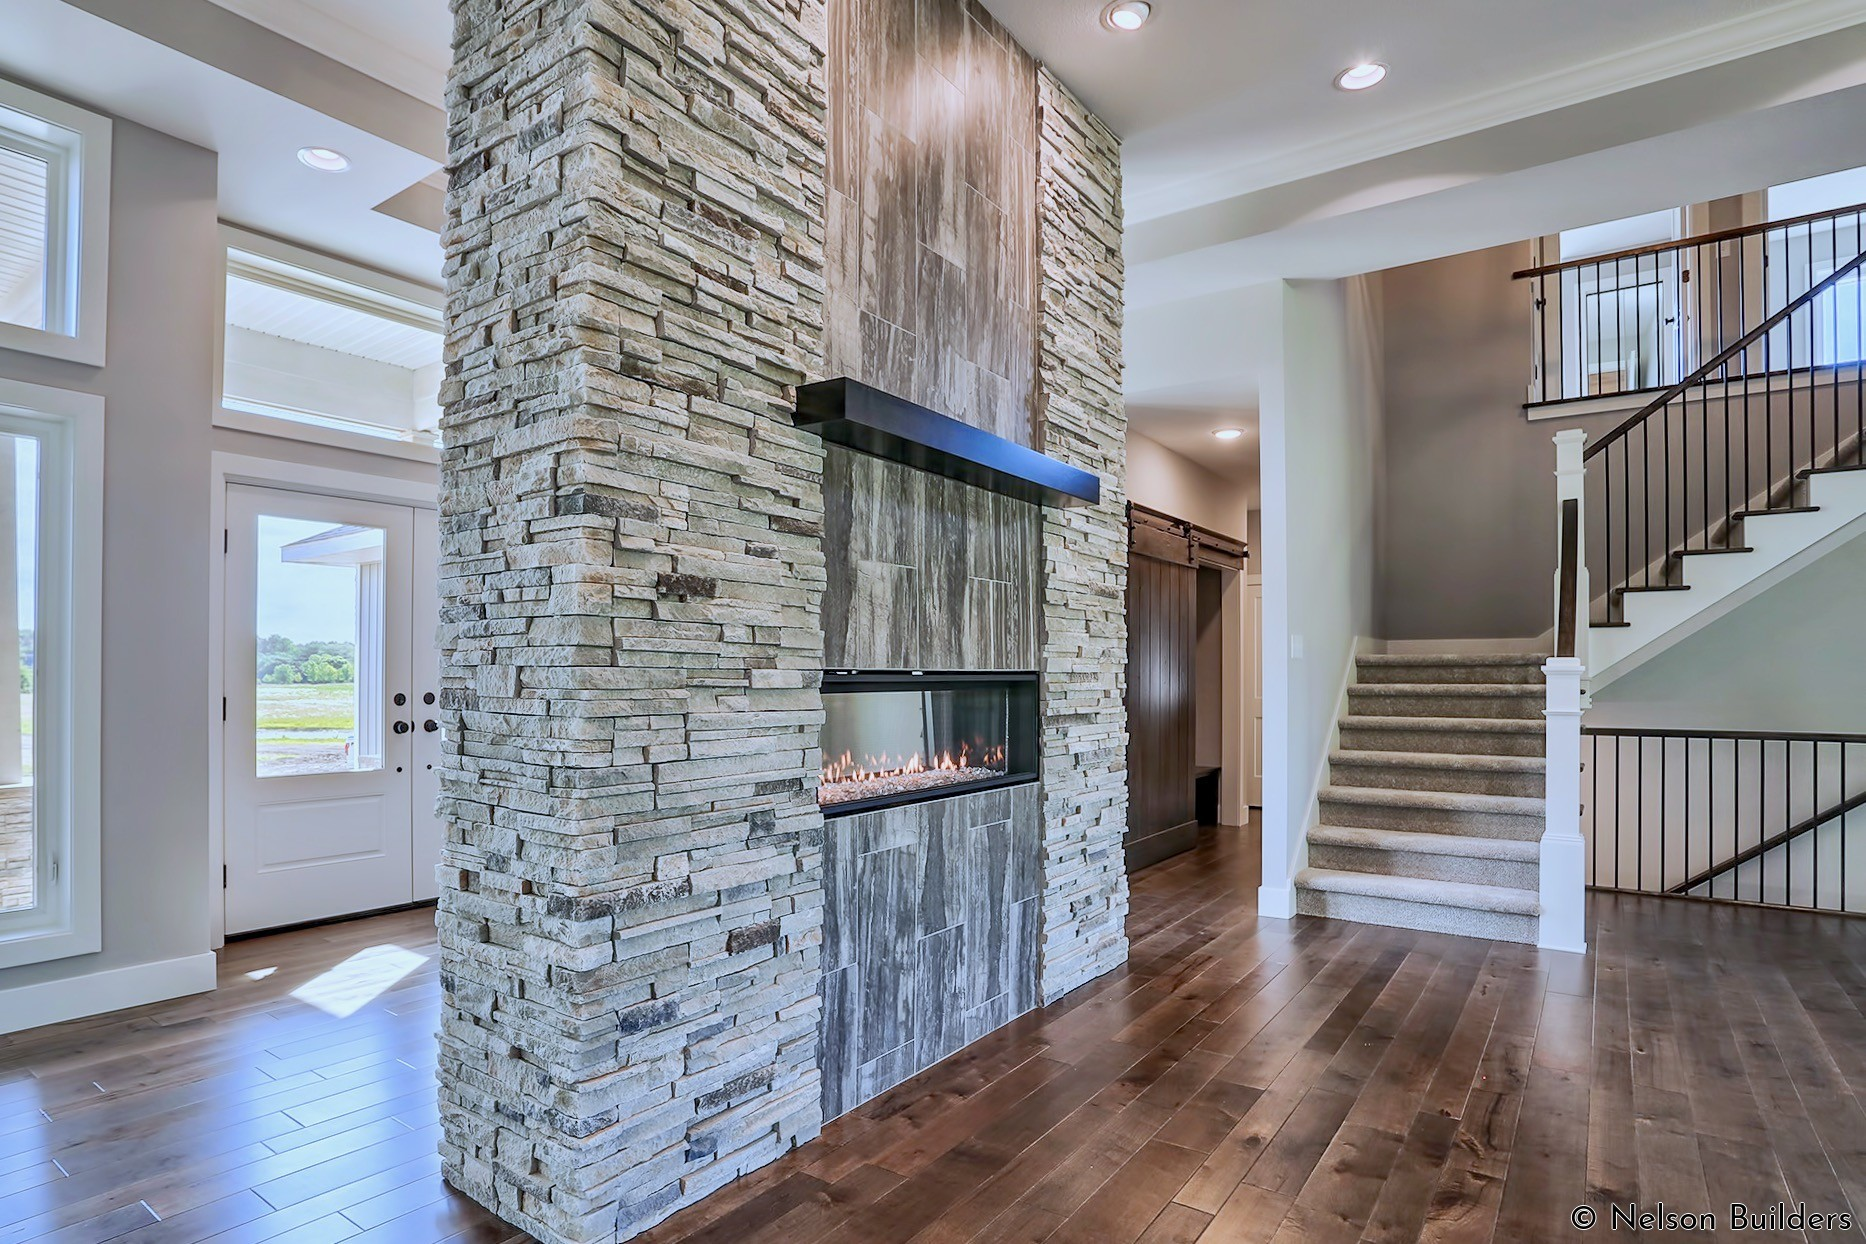 The linear fireplace is given a contemporary look with a mix of gray stone and ceramic tile oriented vertically.